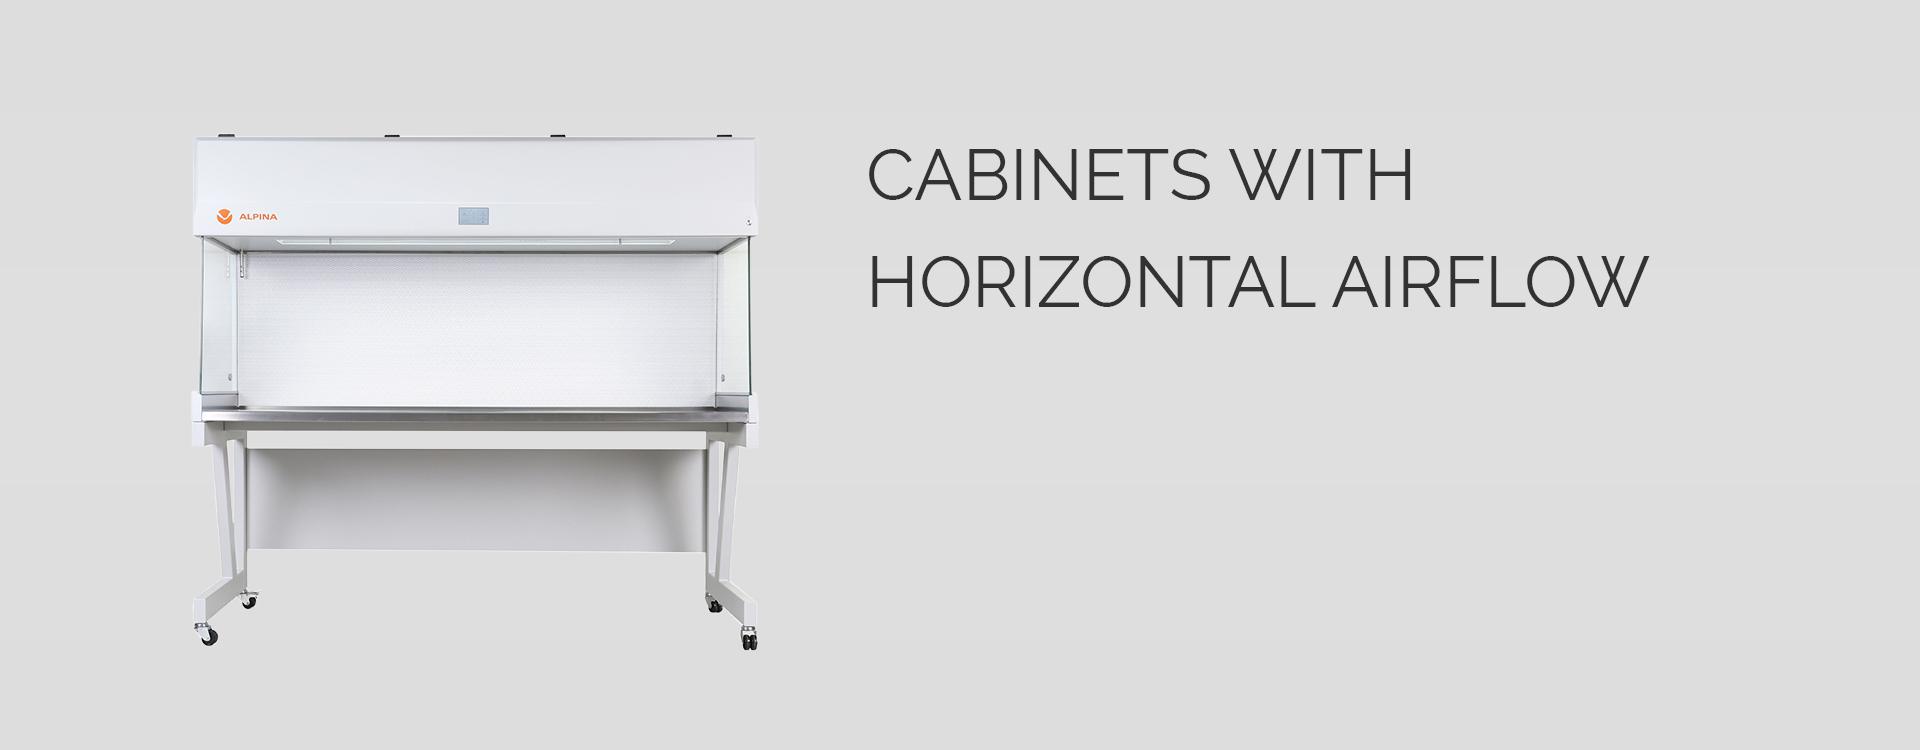 cabinets-with-horizontal-airflow